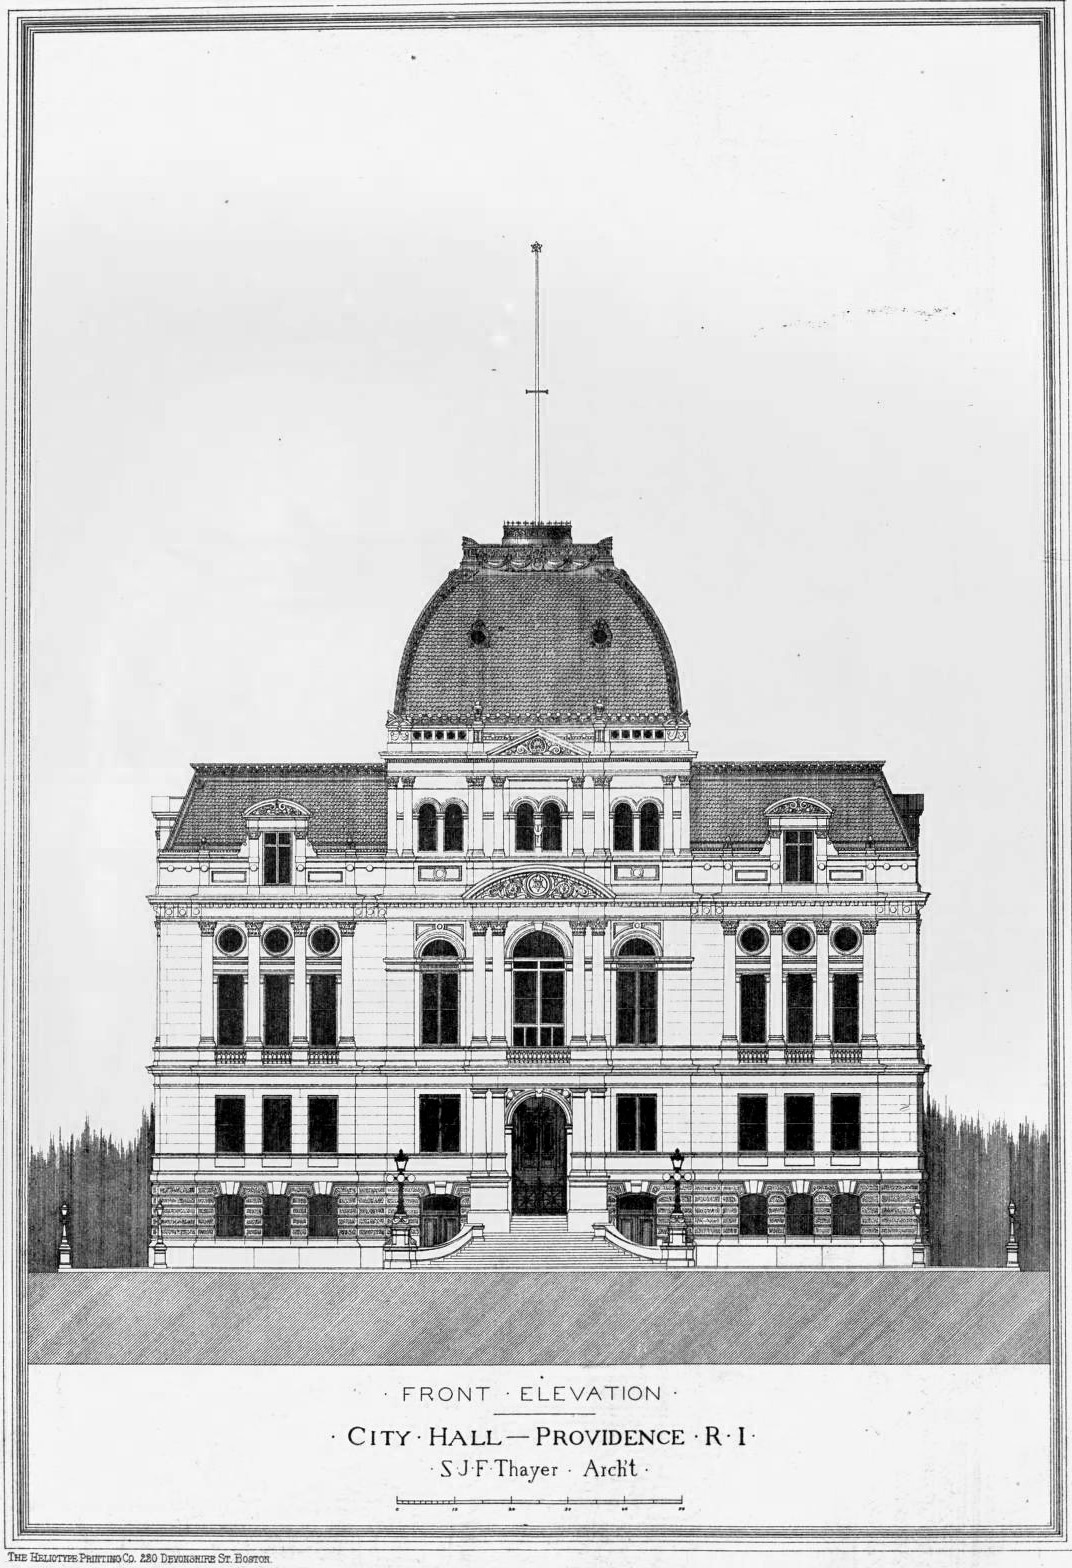 Elevation of the City Hall, Providence